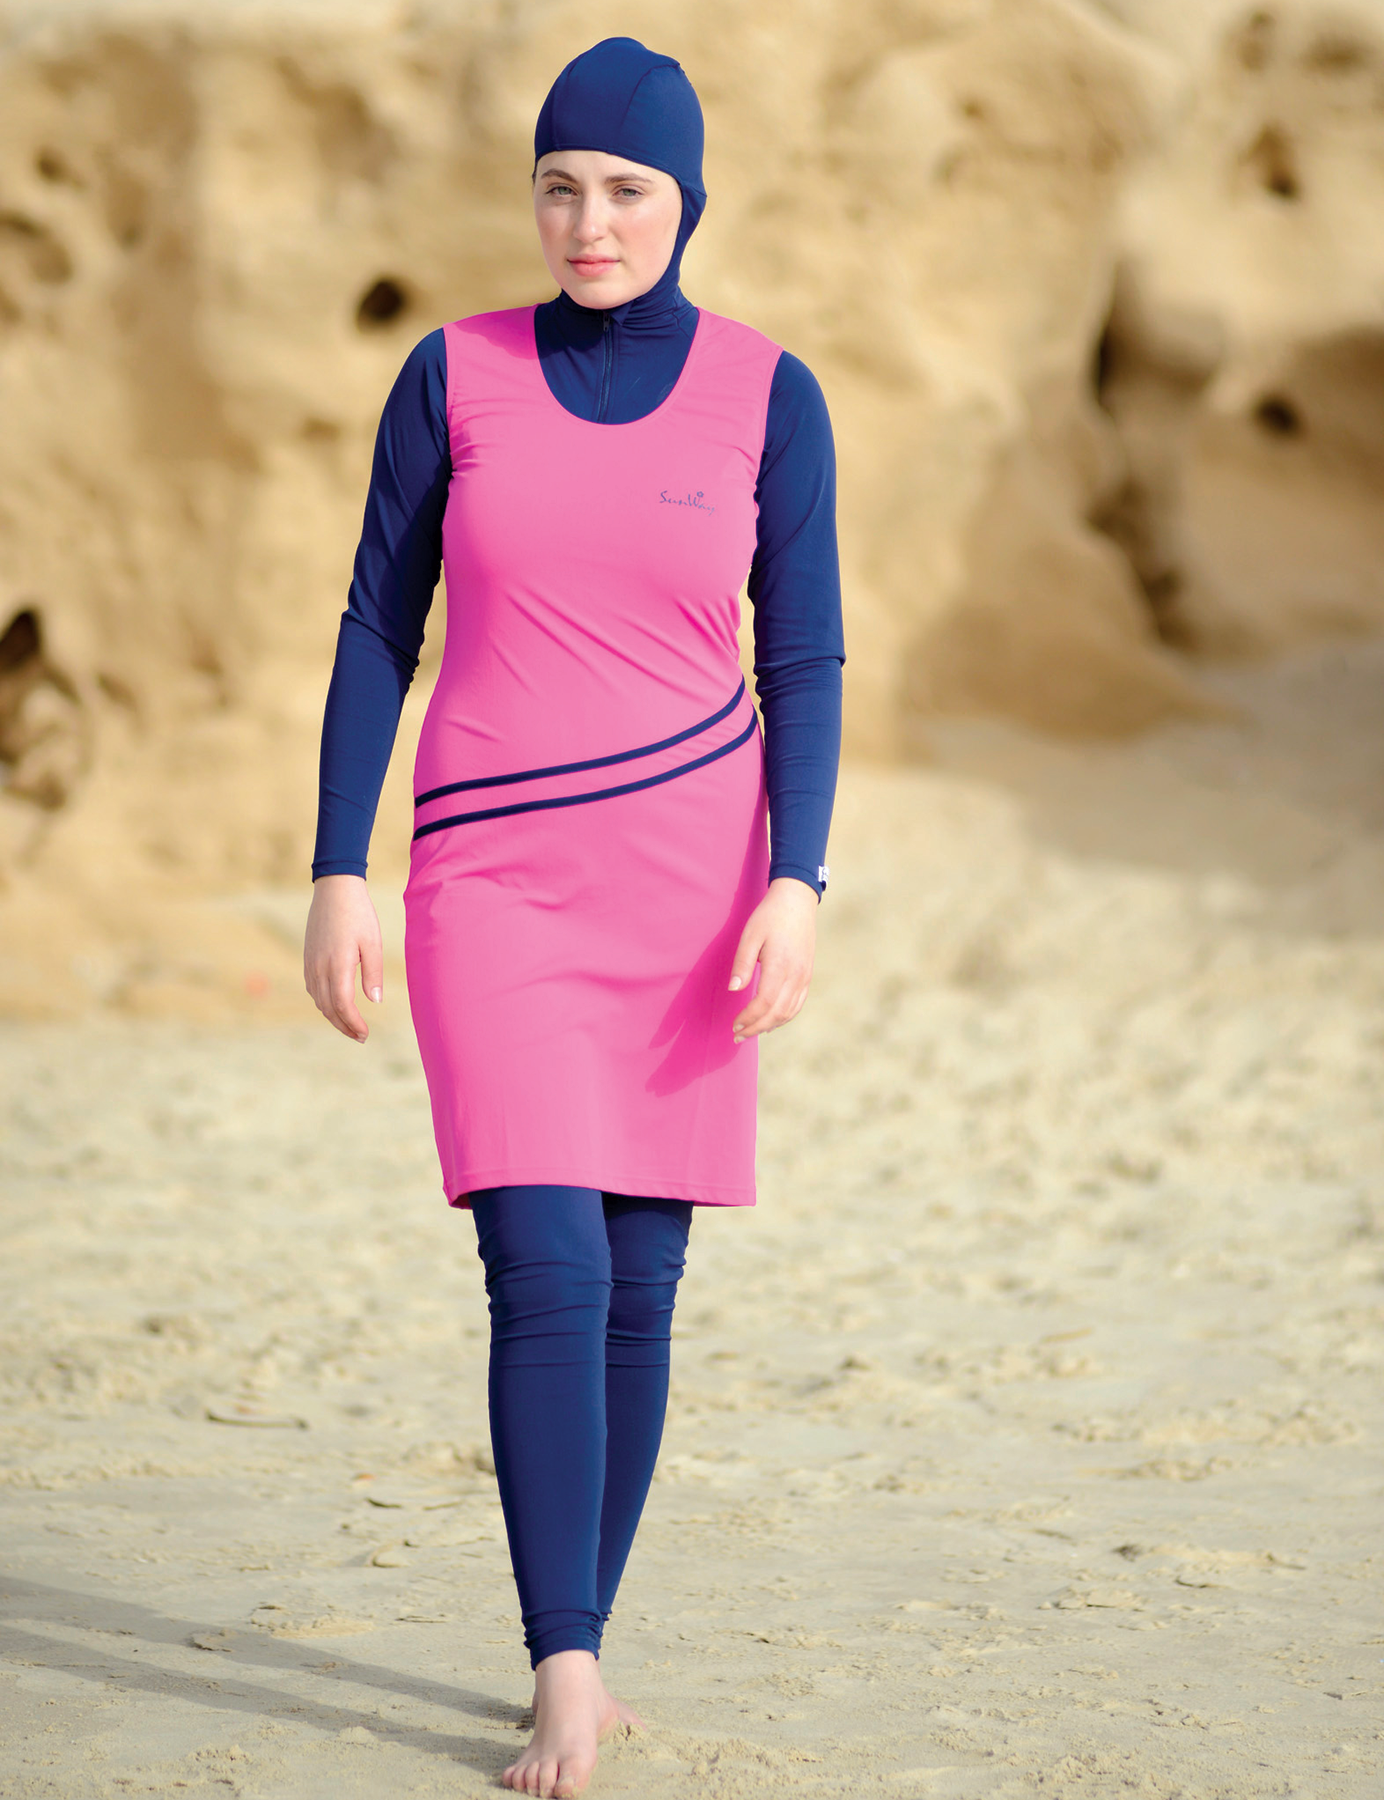 SunWay's Modest UV Clothing : Burkini Modest Swimwear